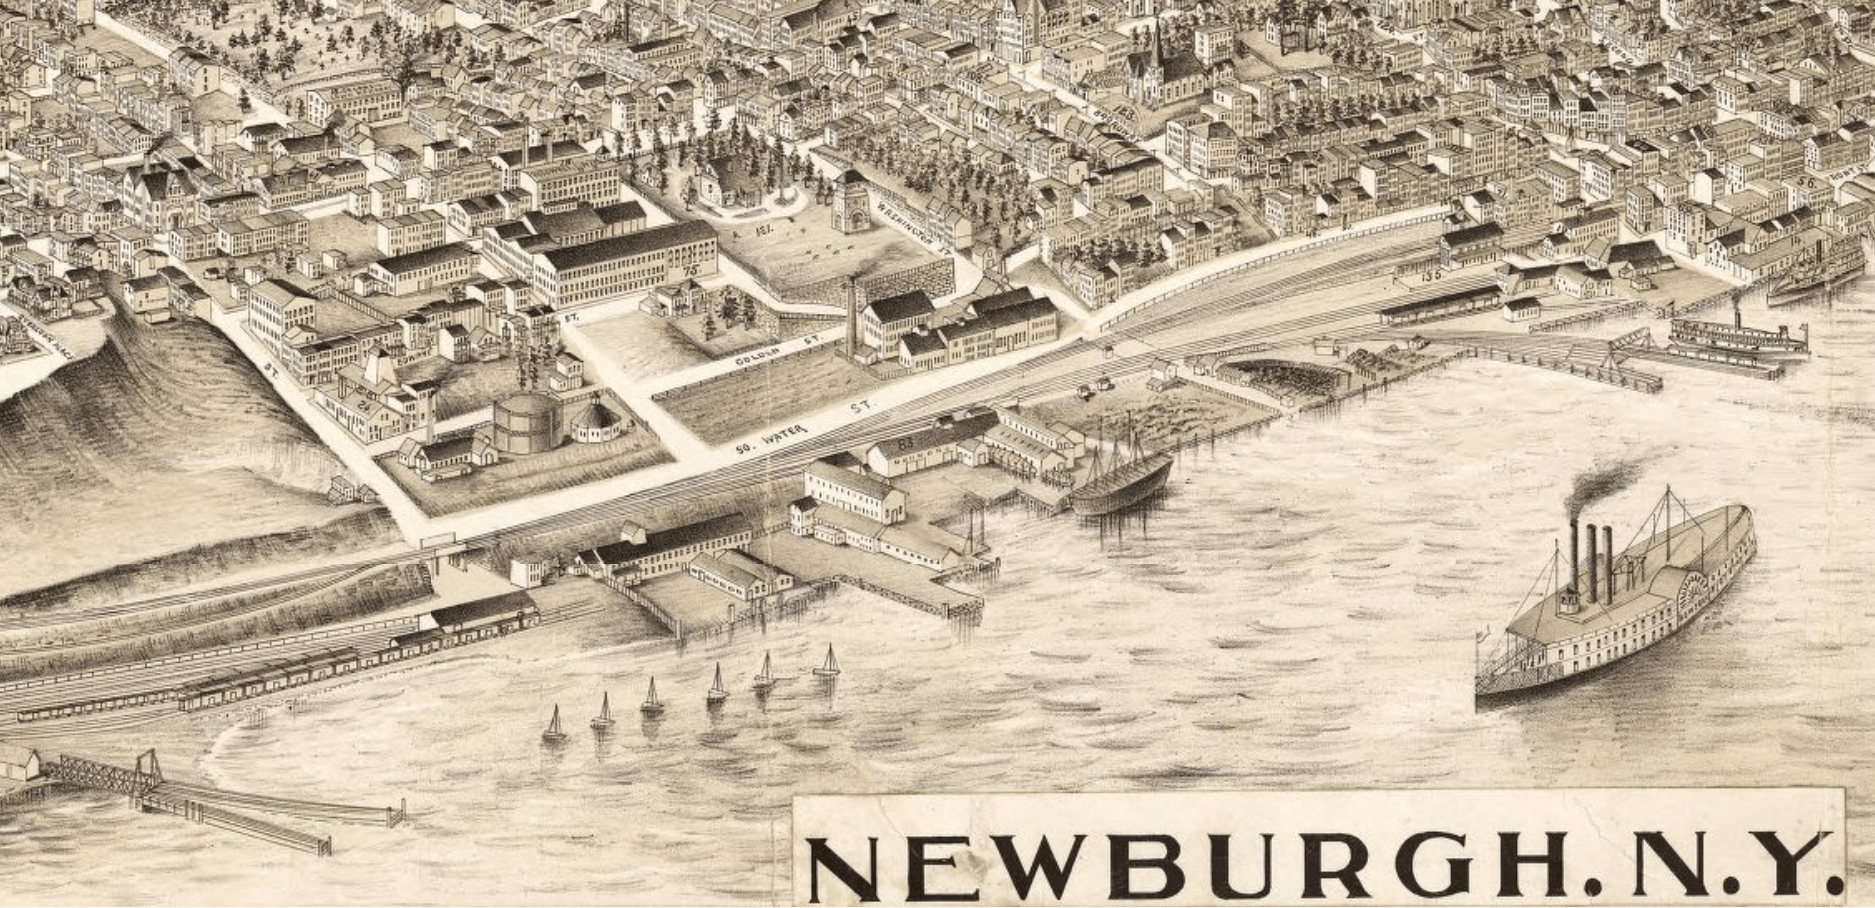 Discover Newburgh's East End Historic Districts history, architecture, and charm!